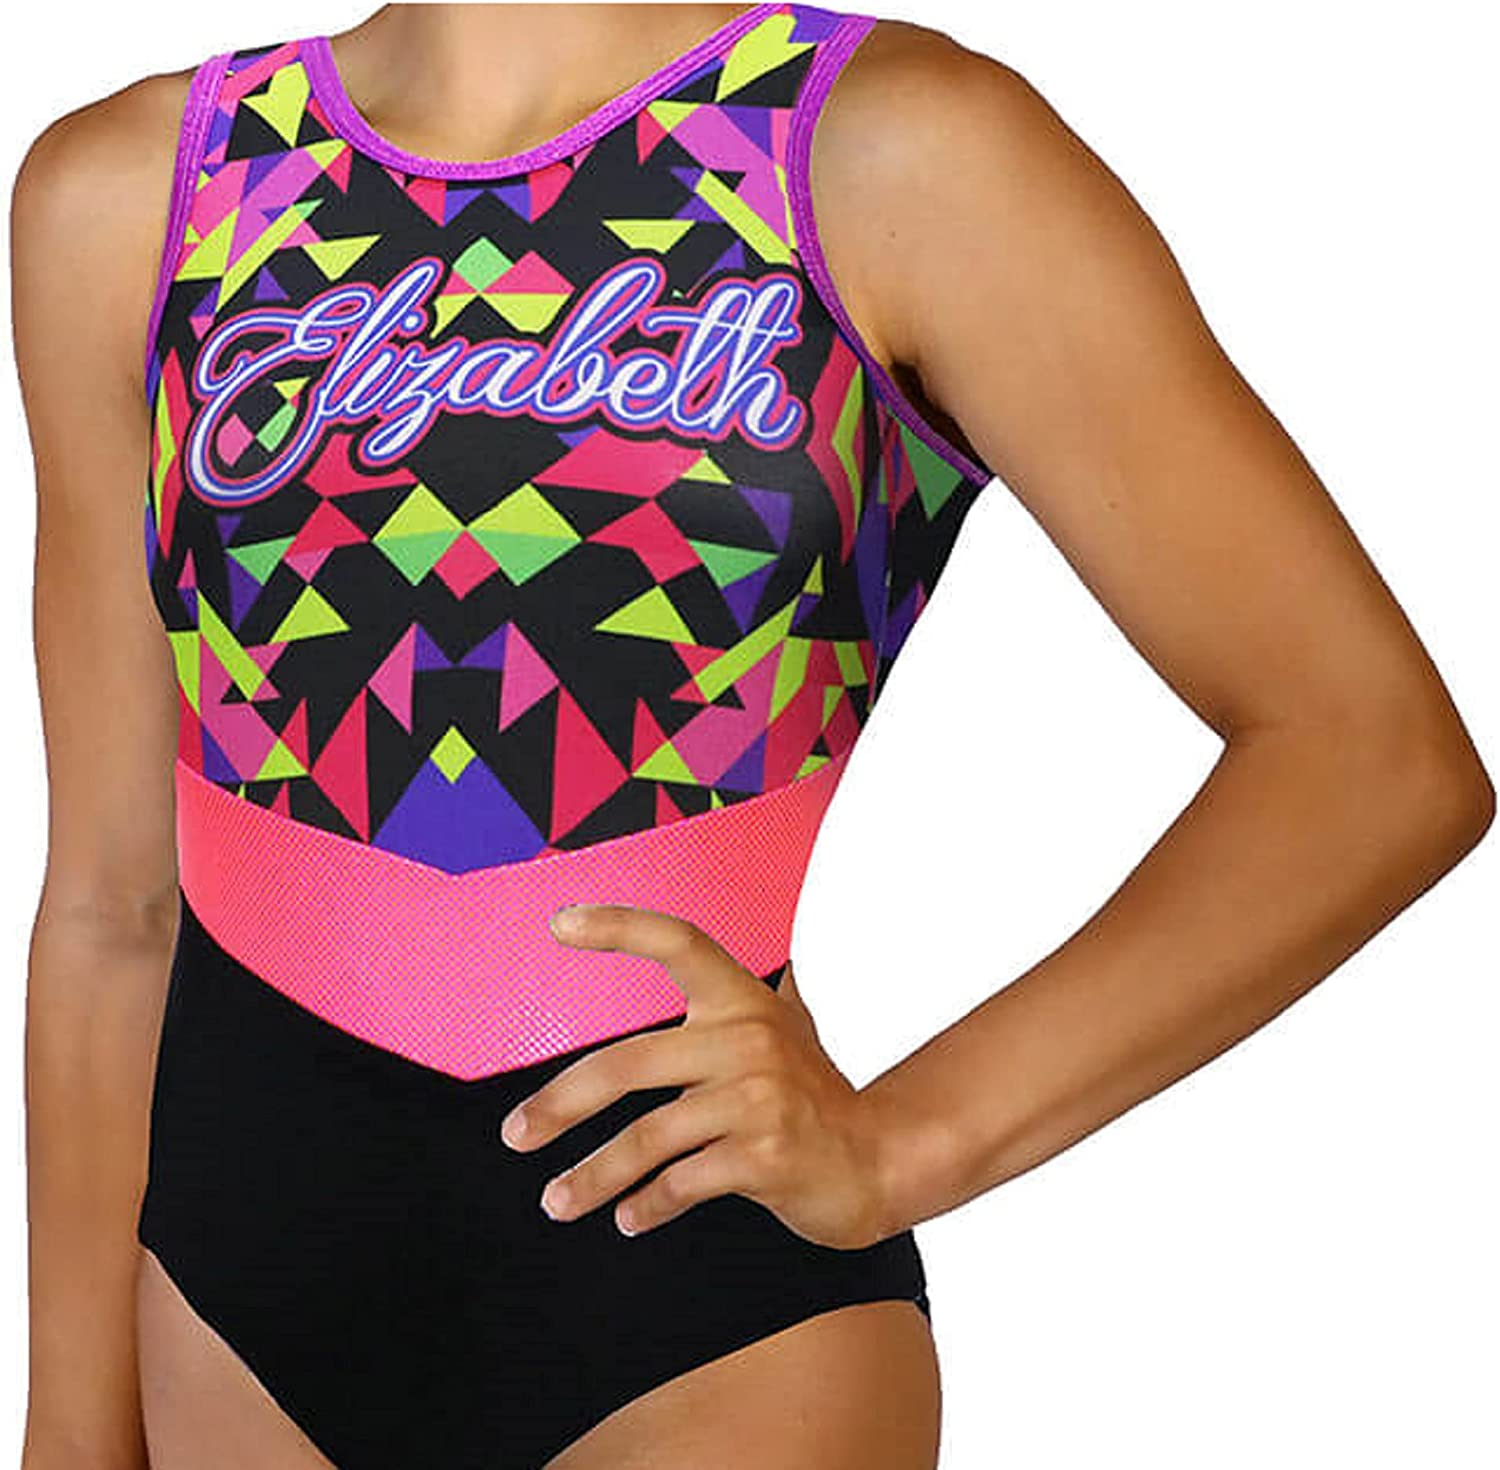 Snowflake Designs to The Point Baltimore Mall Dance Personalized Gymnastics or Price reduction